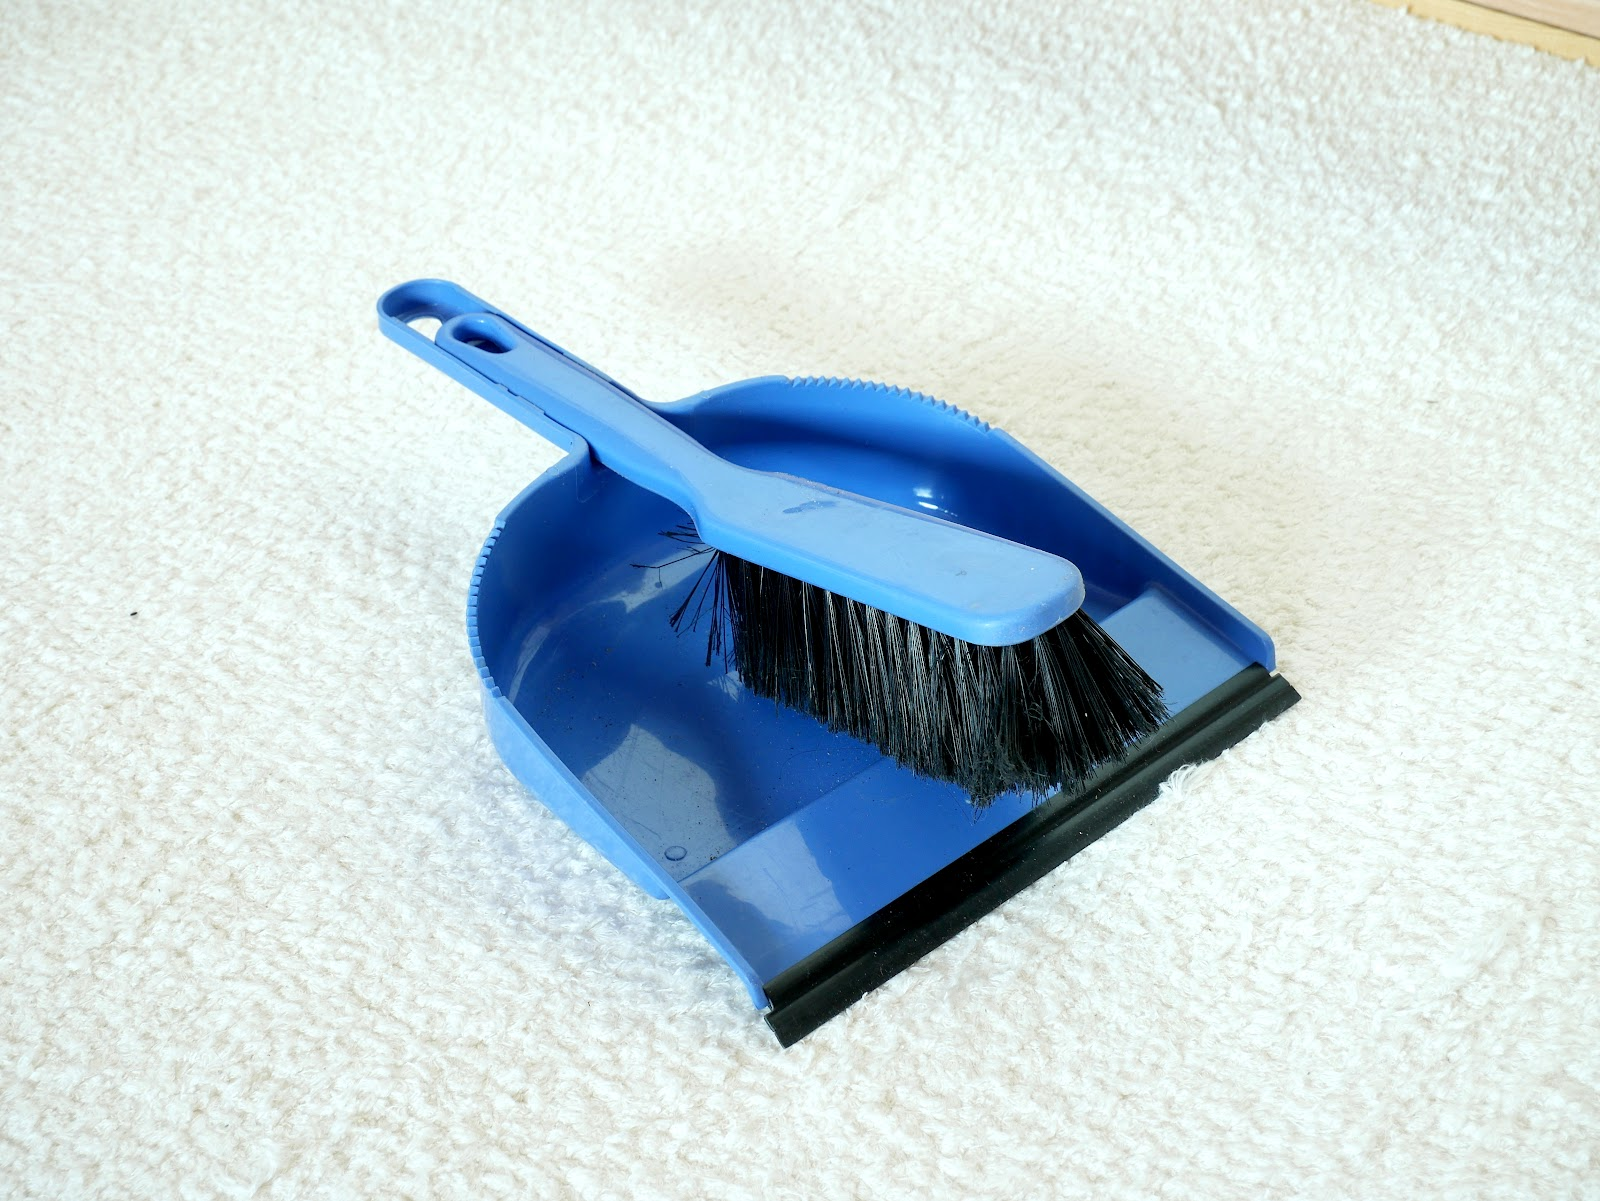 File:Blue broom and dustpan.jpg - Wikimedia Commons